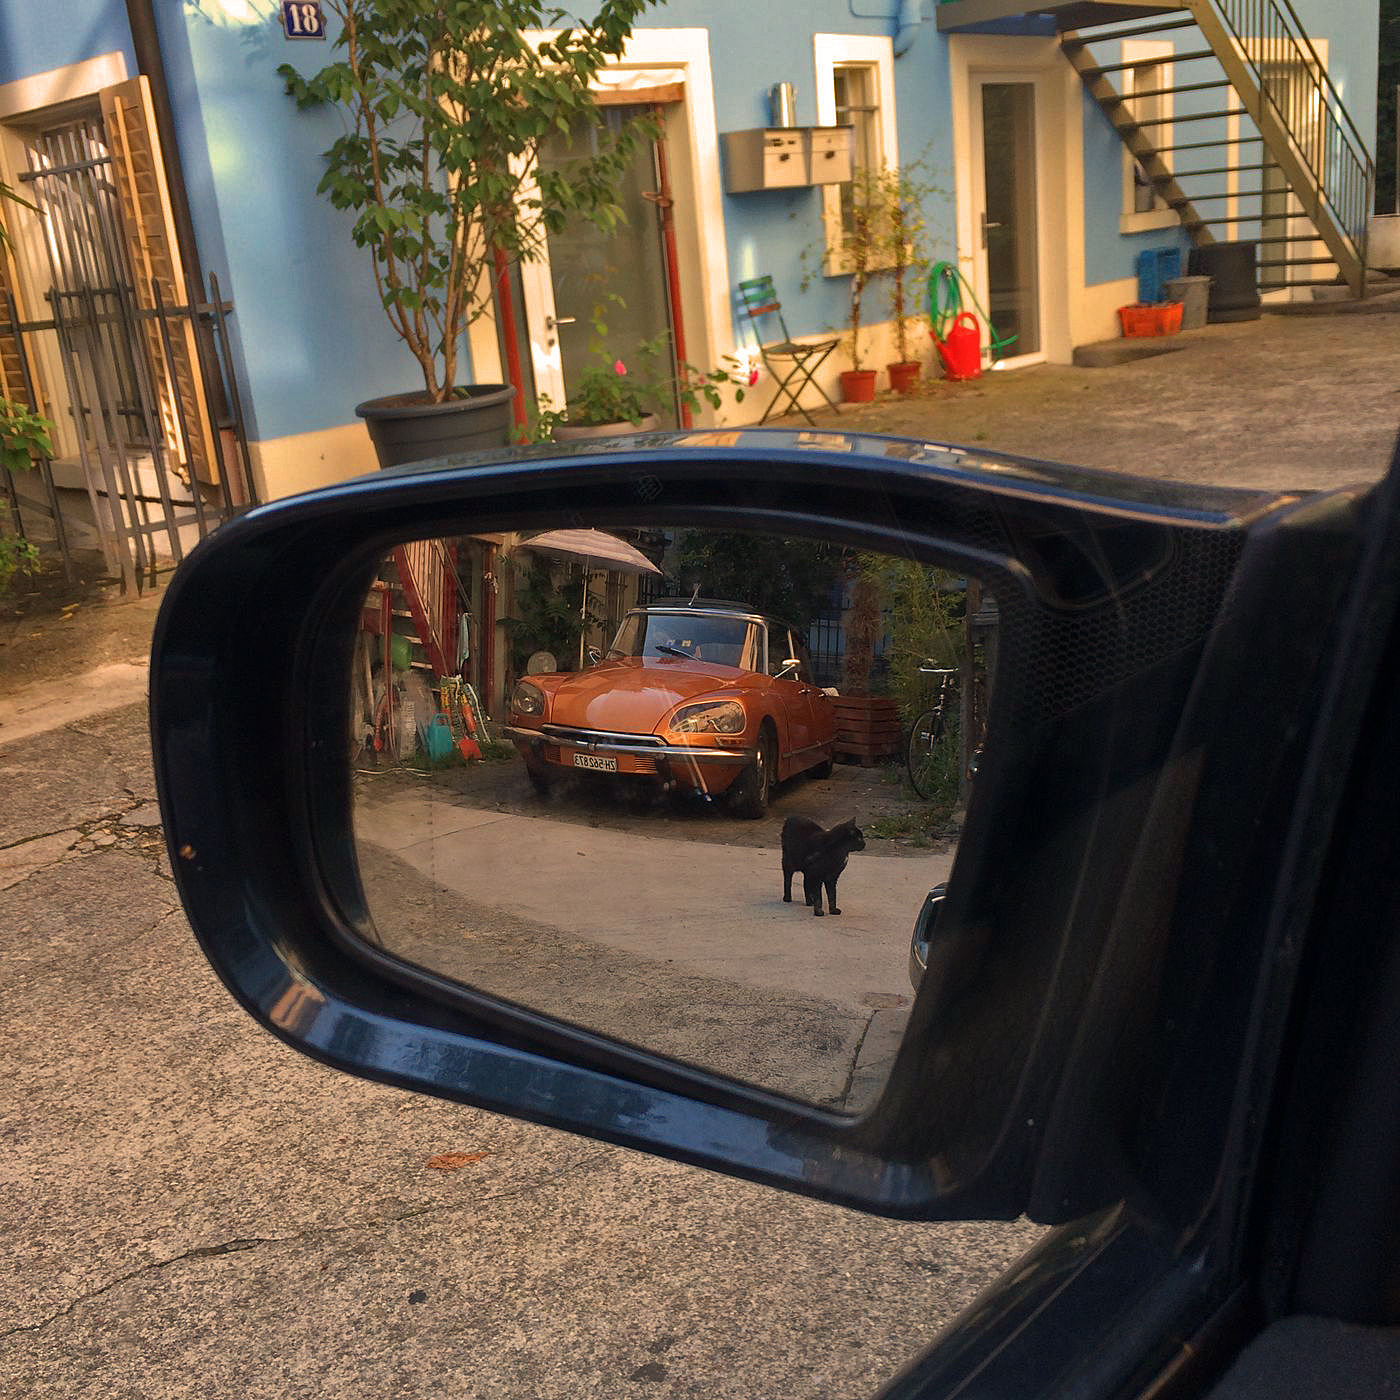 Objects in the rear view mirror may be closer than they appear